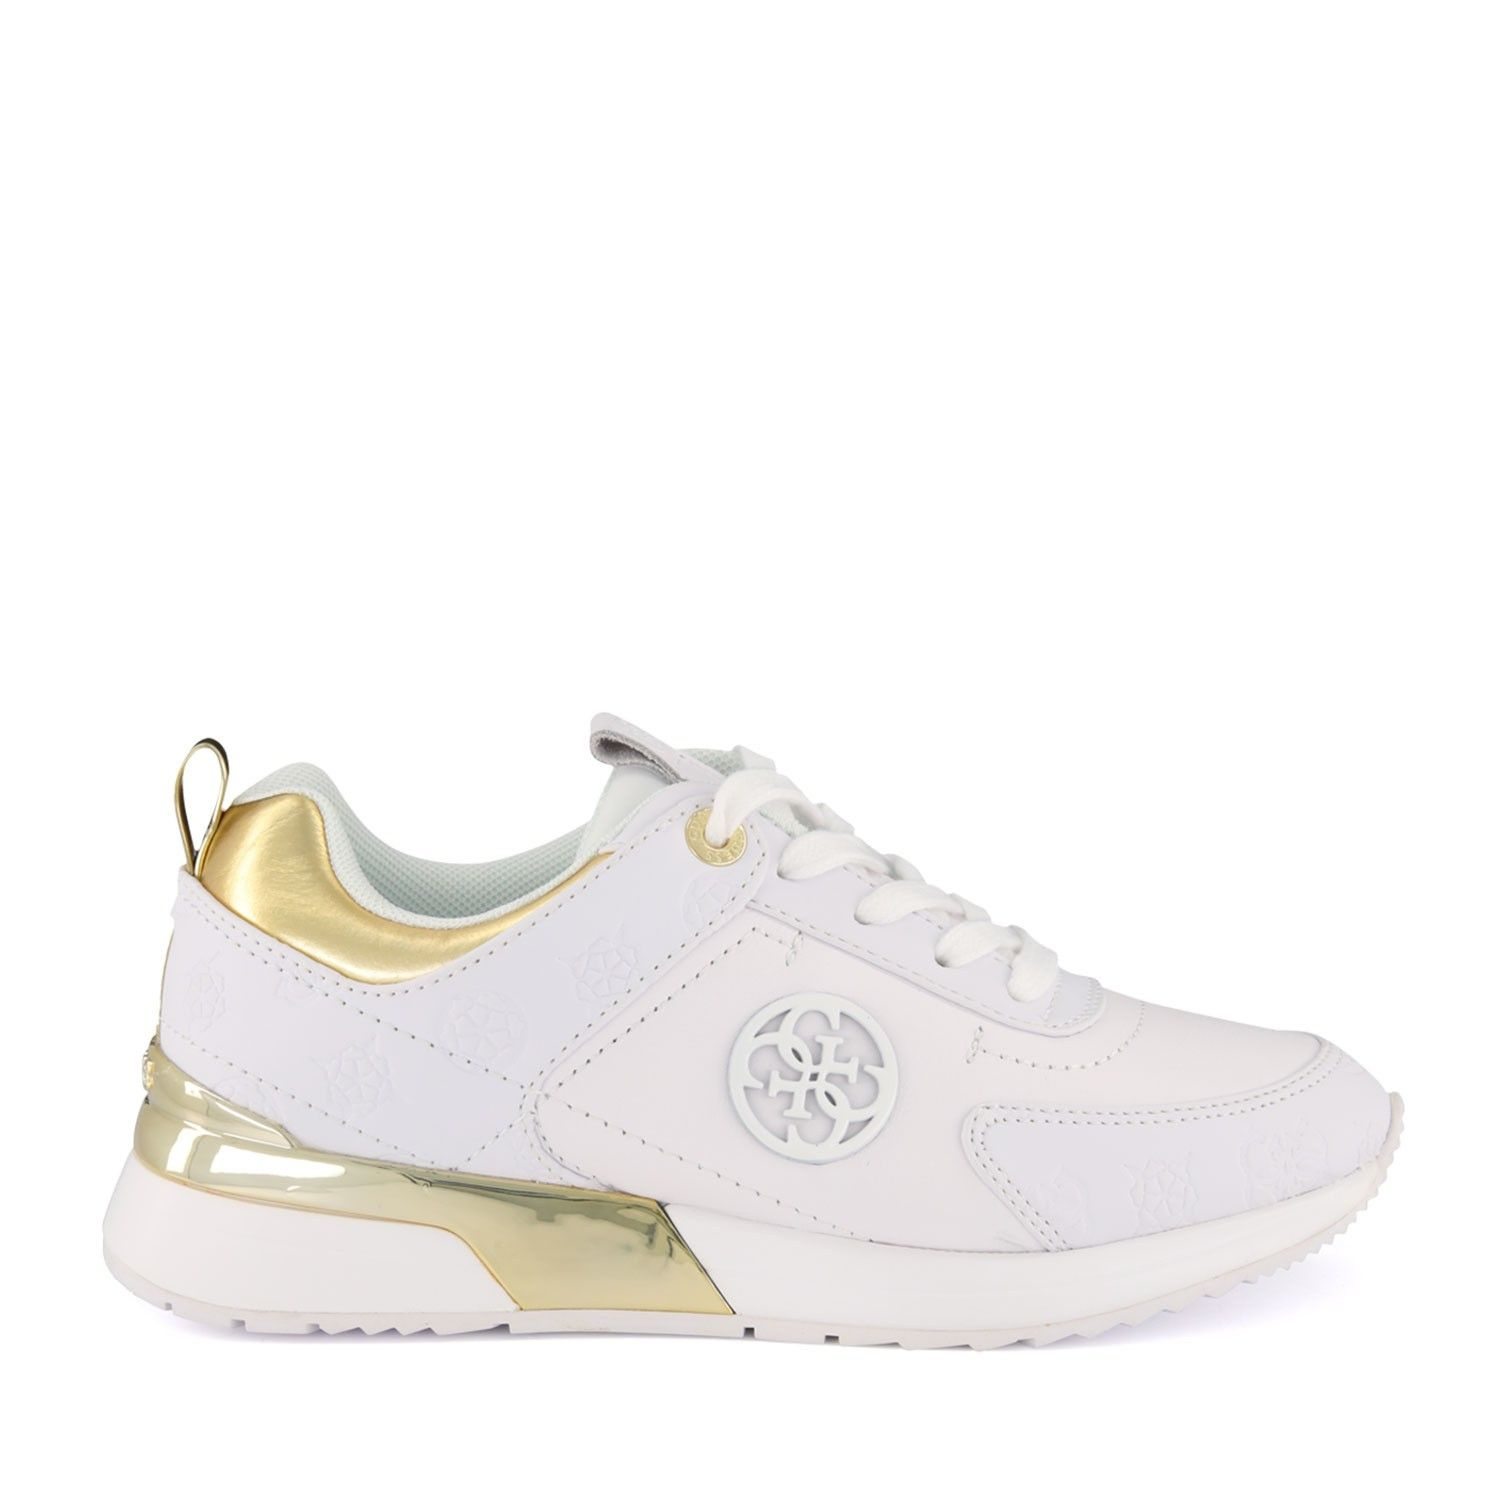 guess marilyn sneakers \u003e Up to 64% OFF